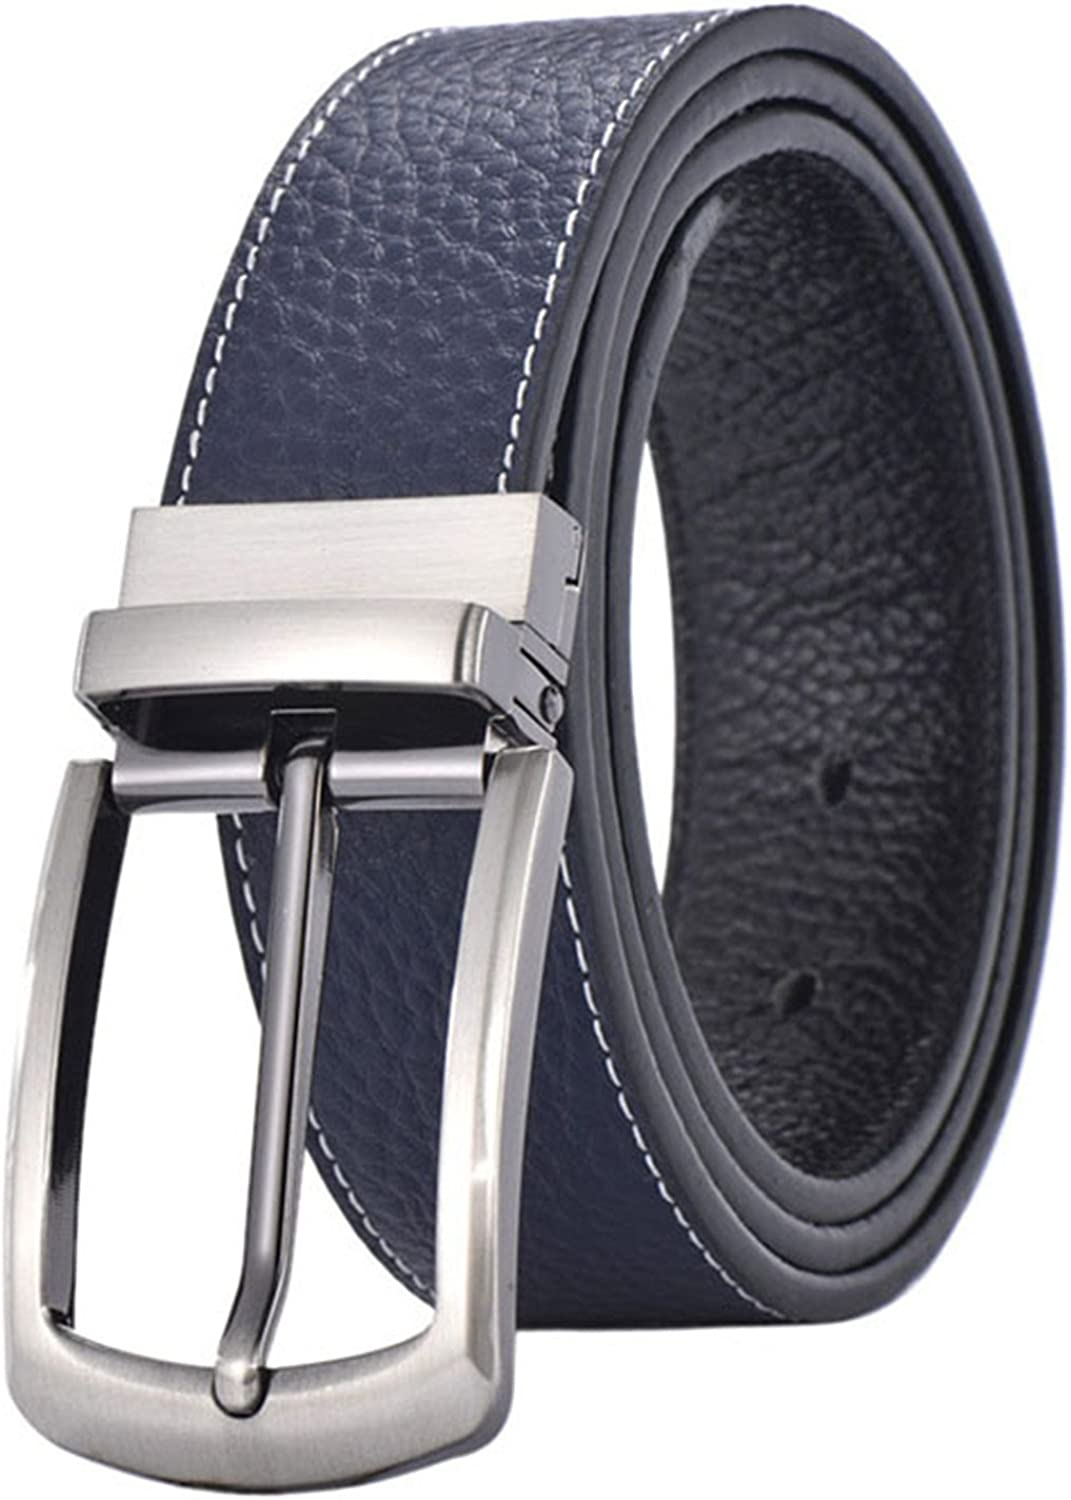 TOGIC Fashion Men Belts Leather Top Cowskin Wide Strap Male Wedding Pin Buckle Rotate Jeans